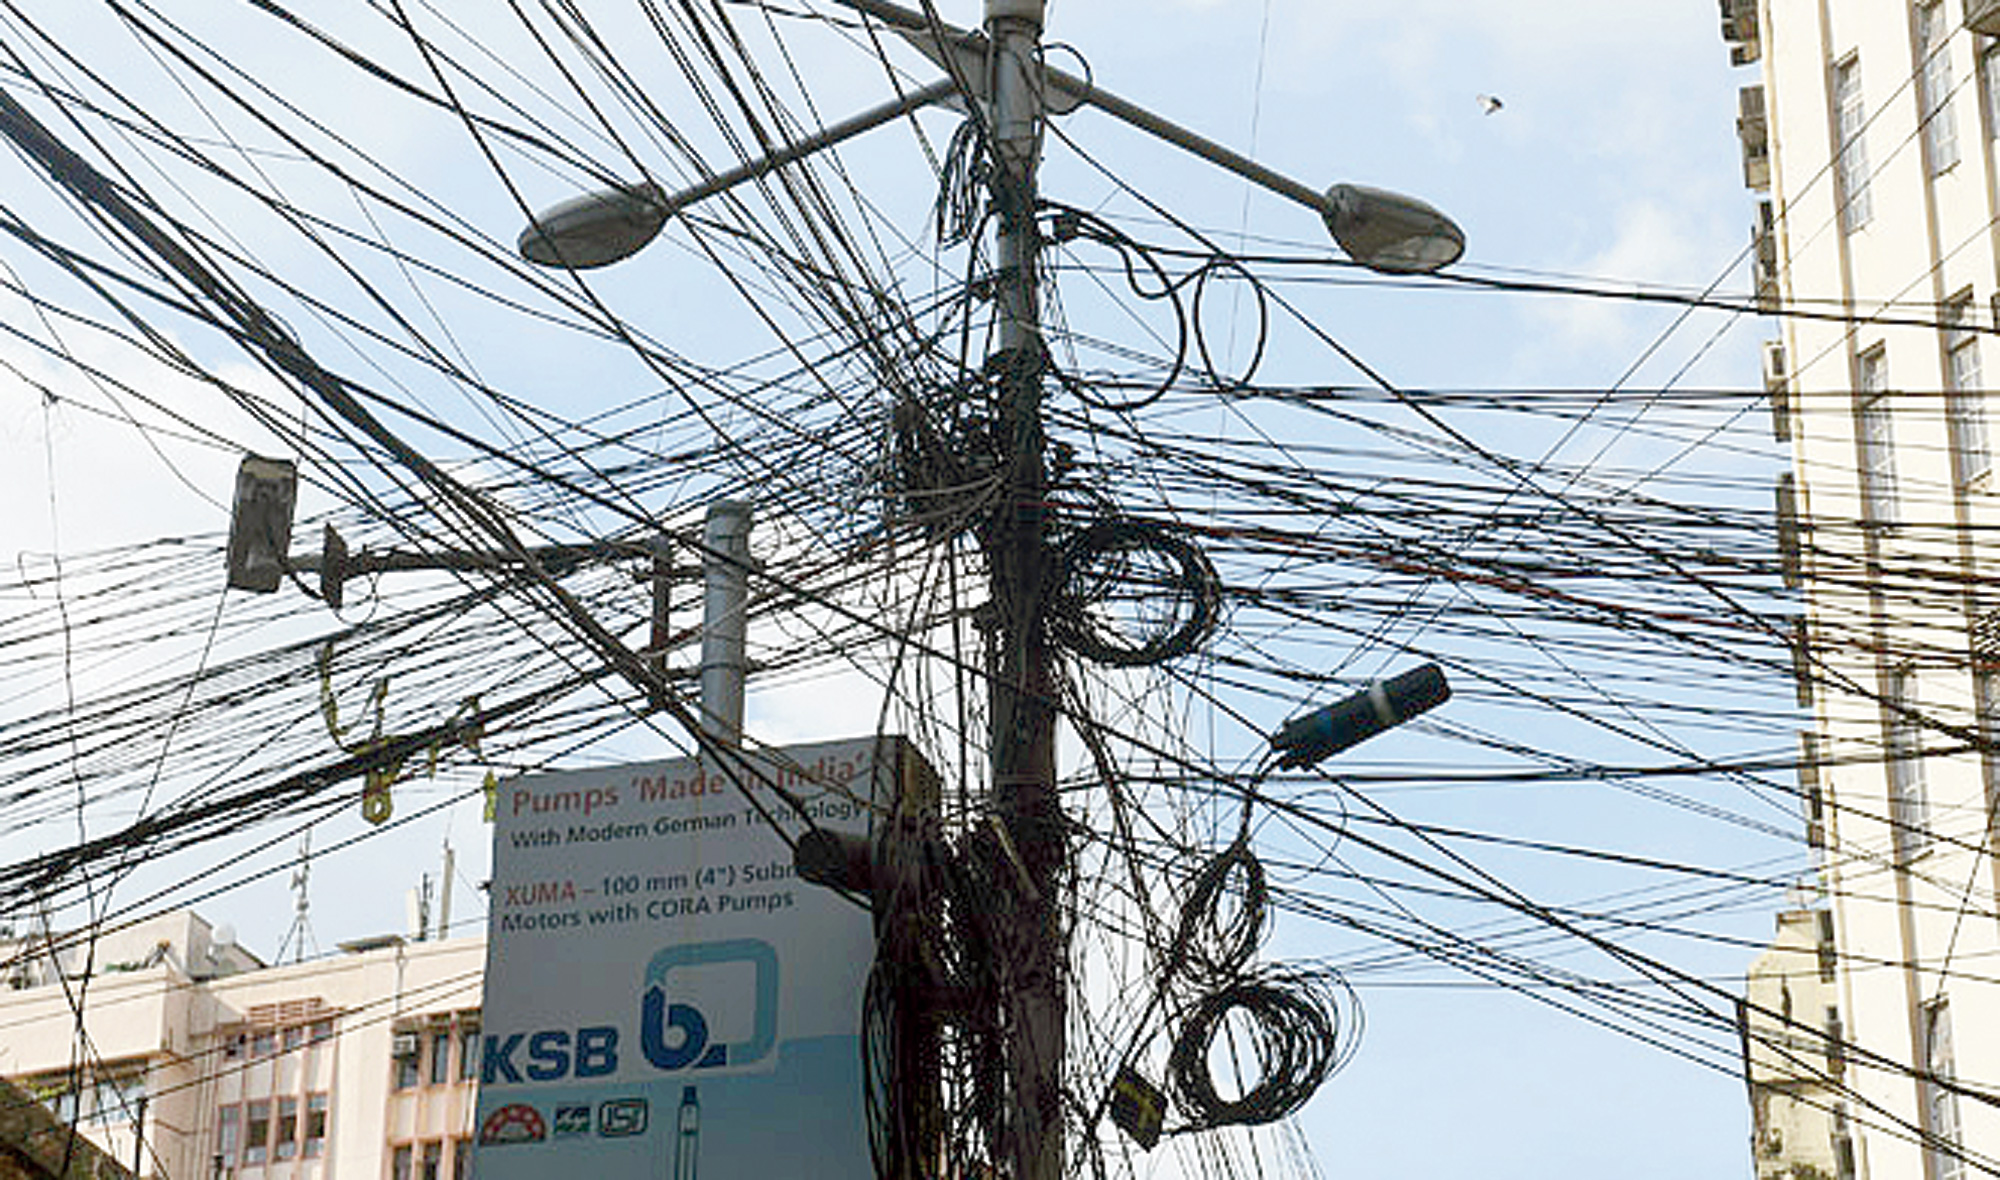 Calcutta mayor Firhad Hakim seems intent on making a fresh start: he has issued an ultimatum to cable operators and internet service providers to remove inoperative overhead cables within seven days